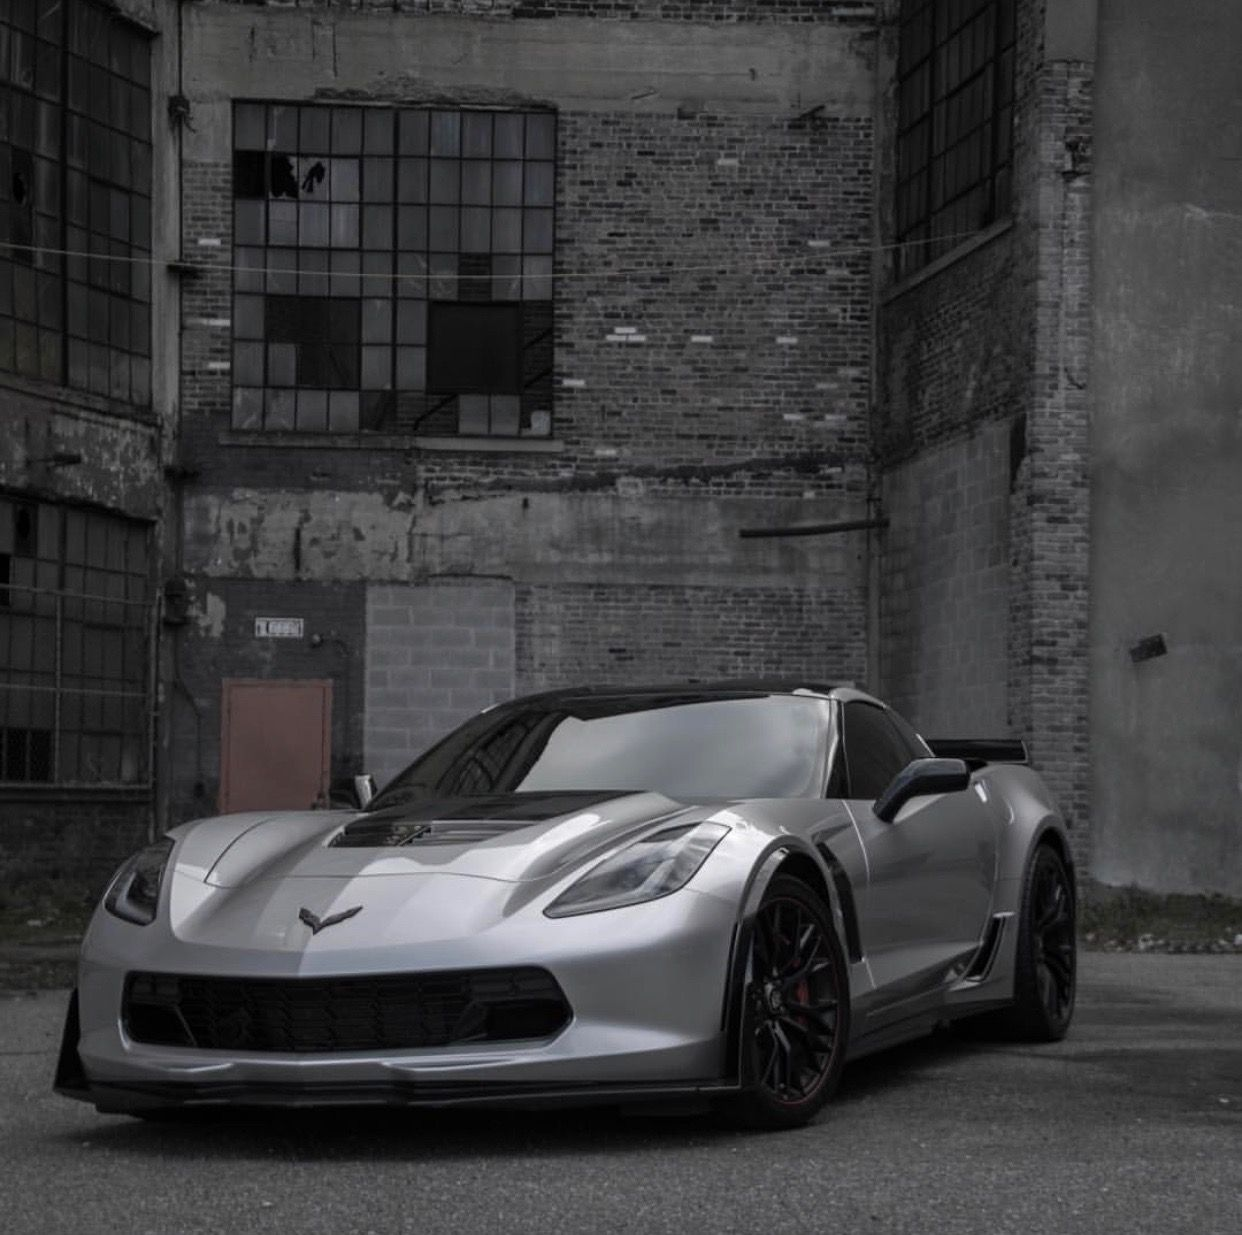 Chevrolet Corvette C7 Z06 Painted In Blade Silver Metallic Photo